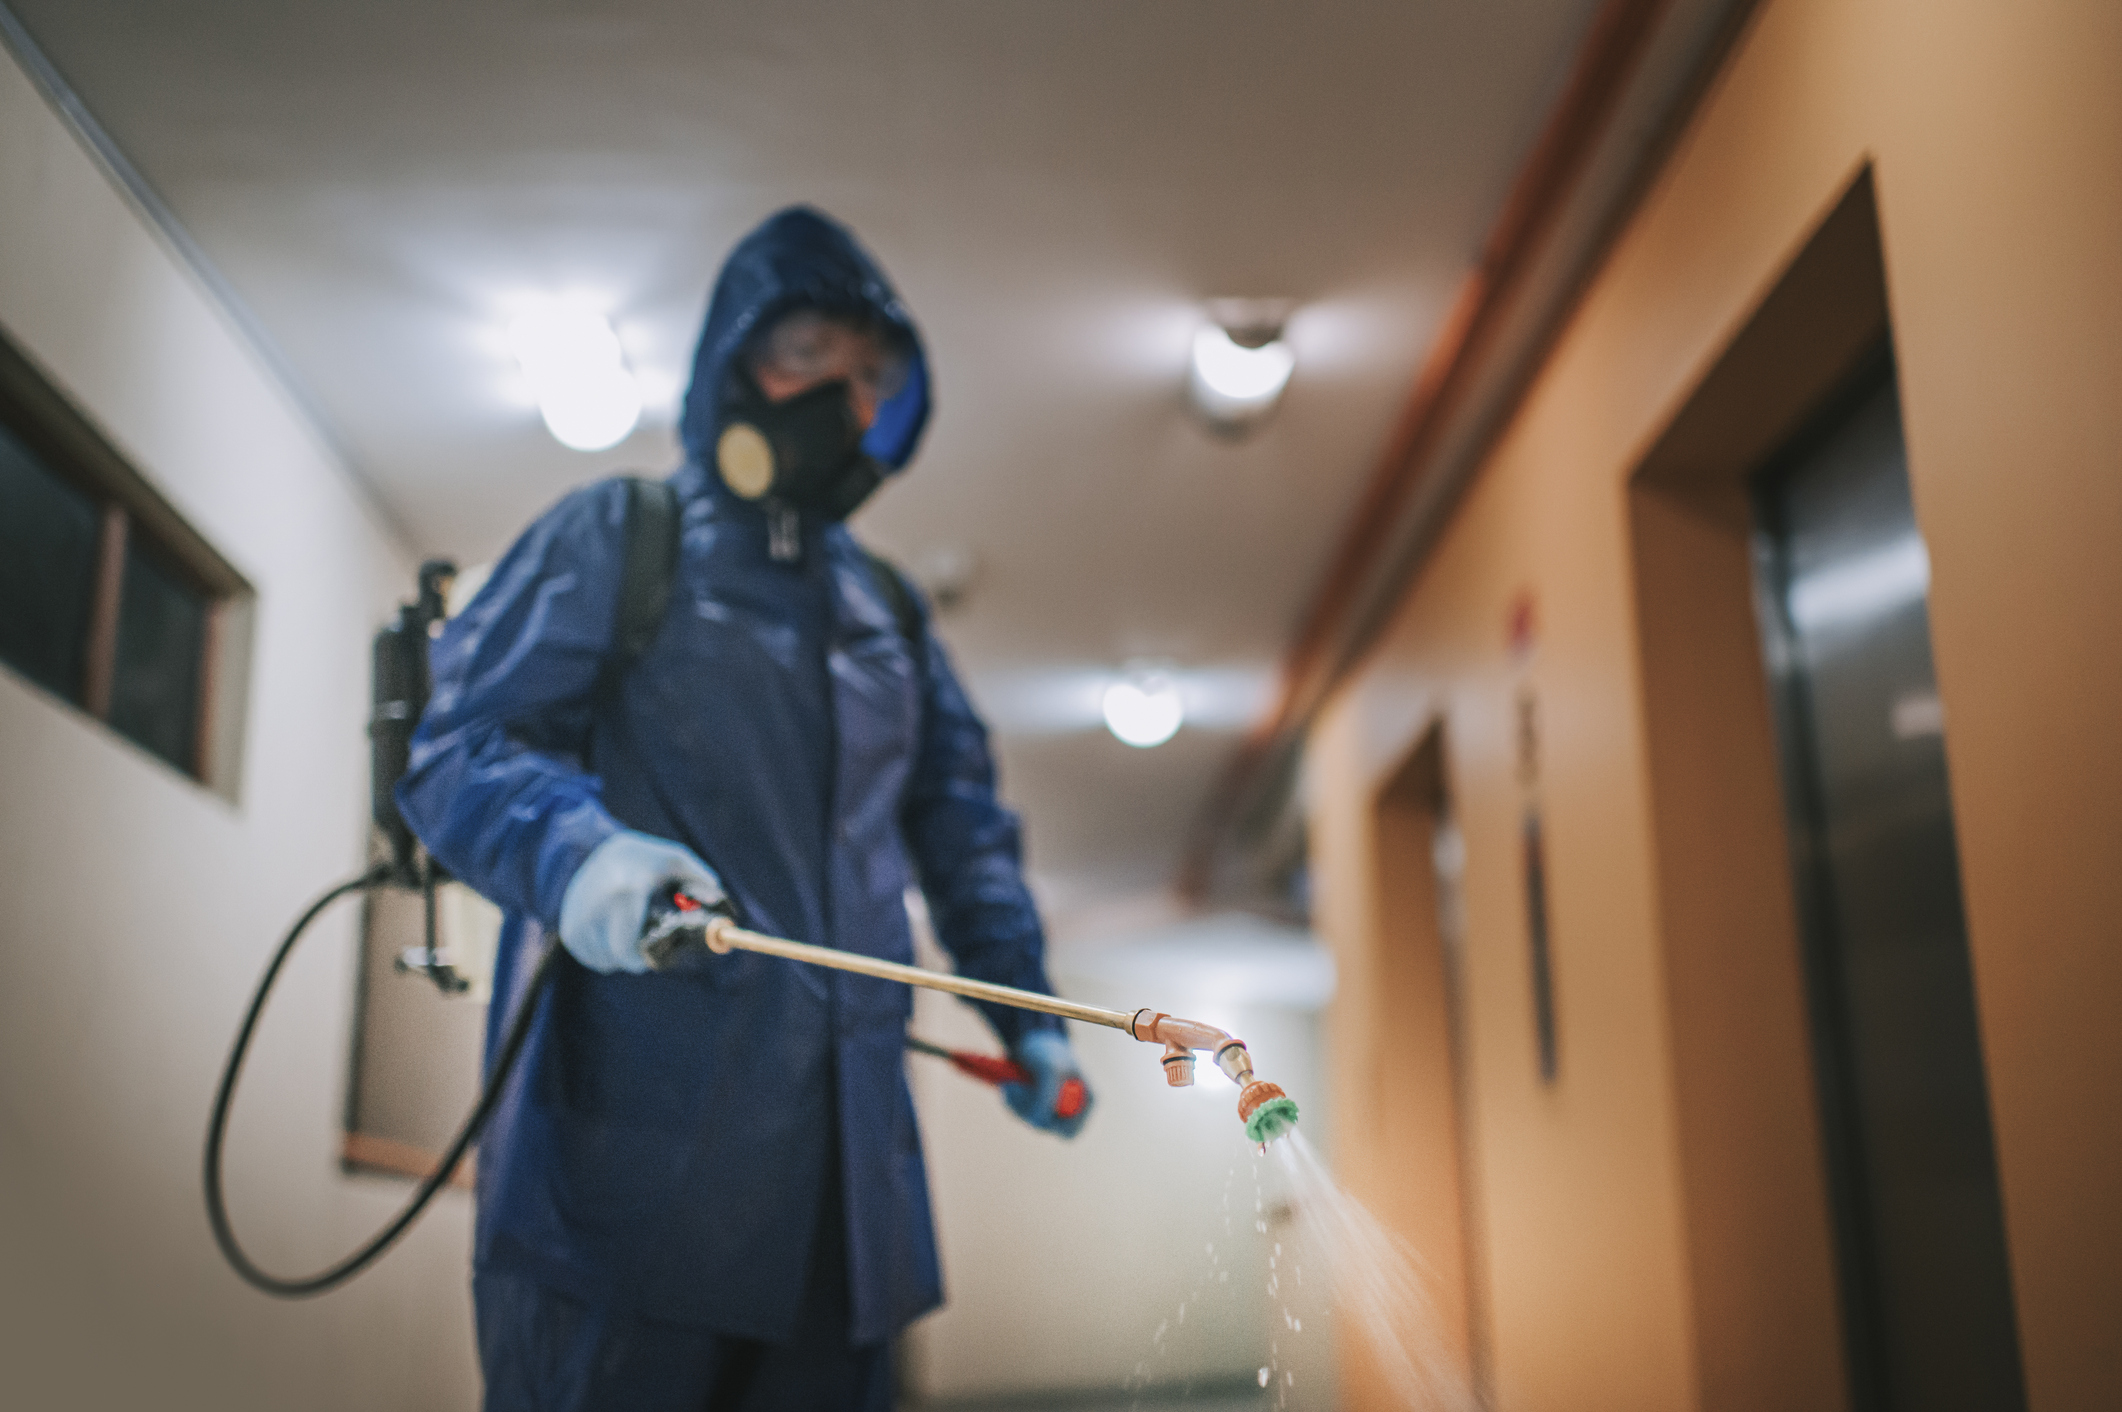 Employee disinfecting a hallway with a spray